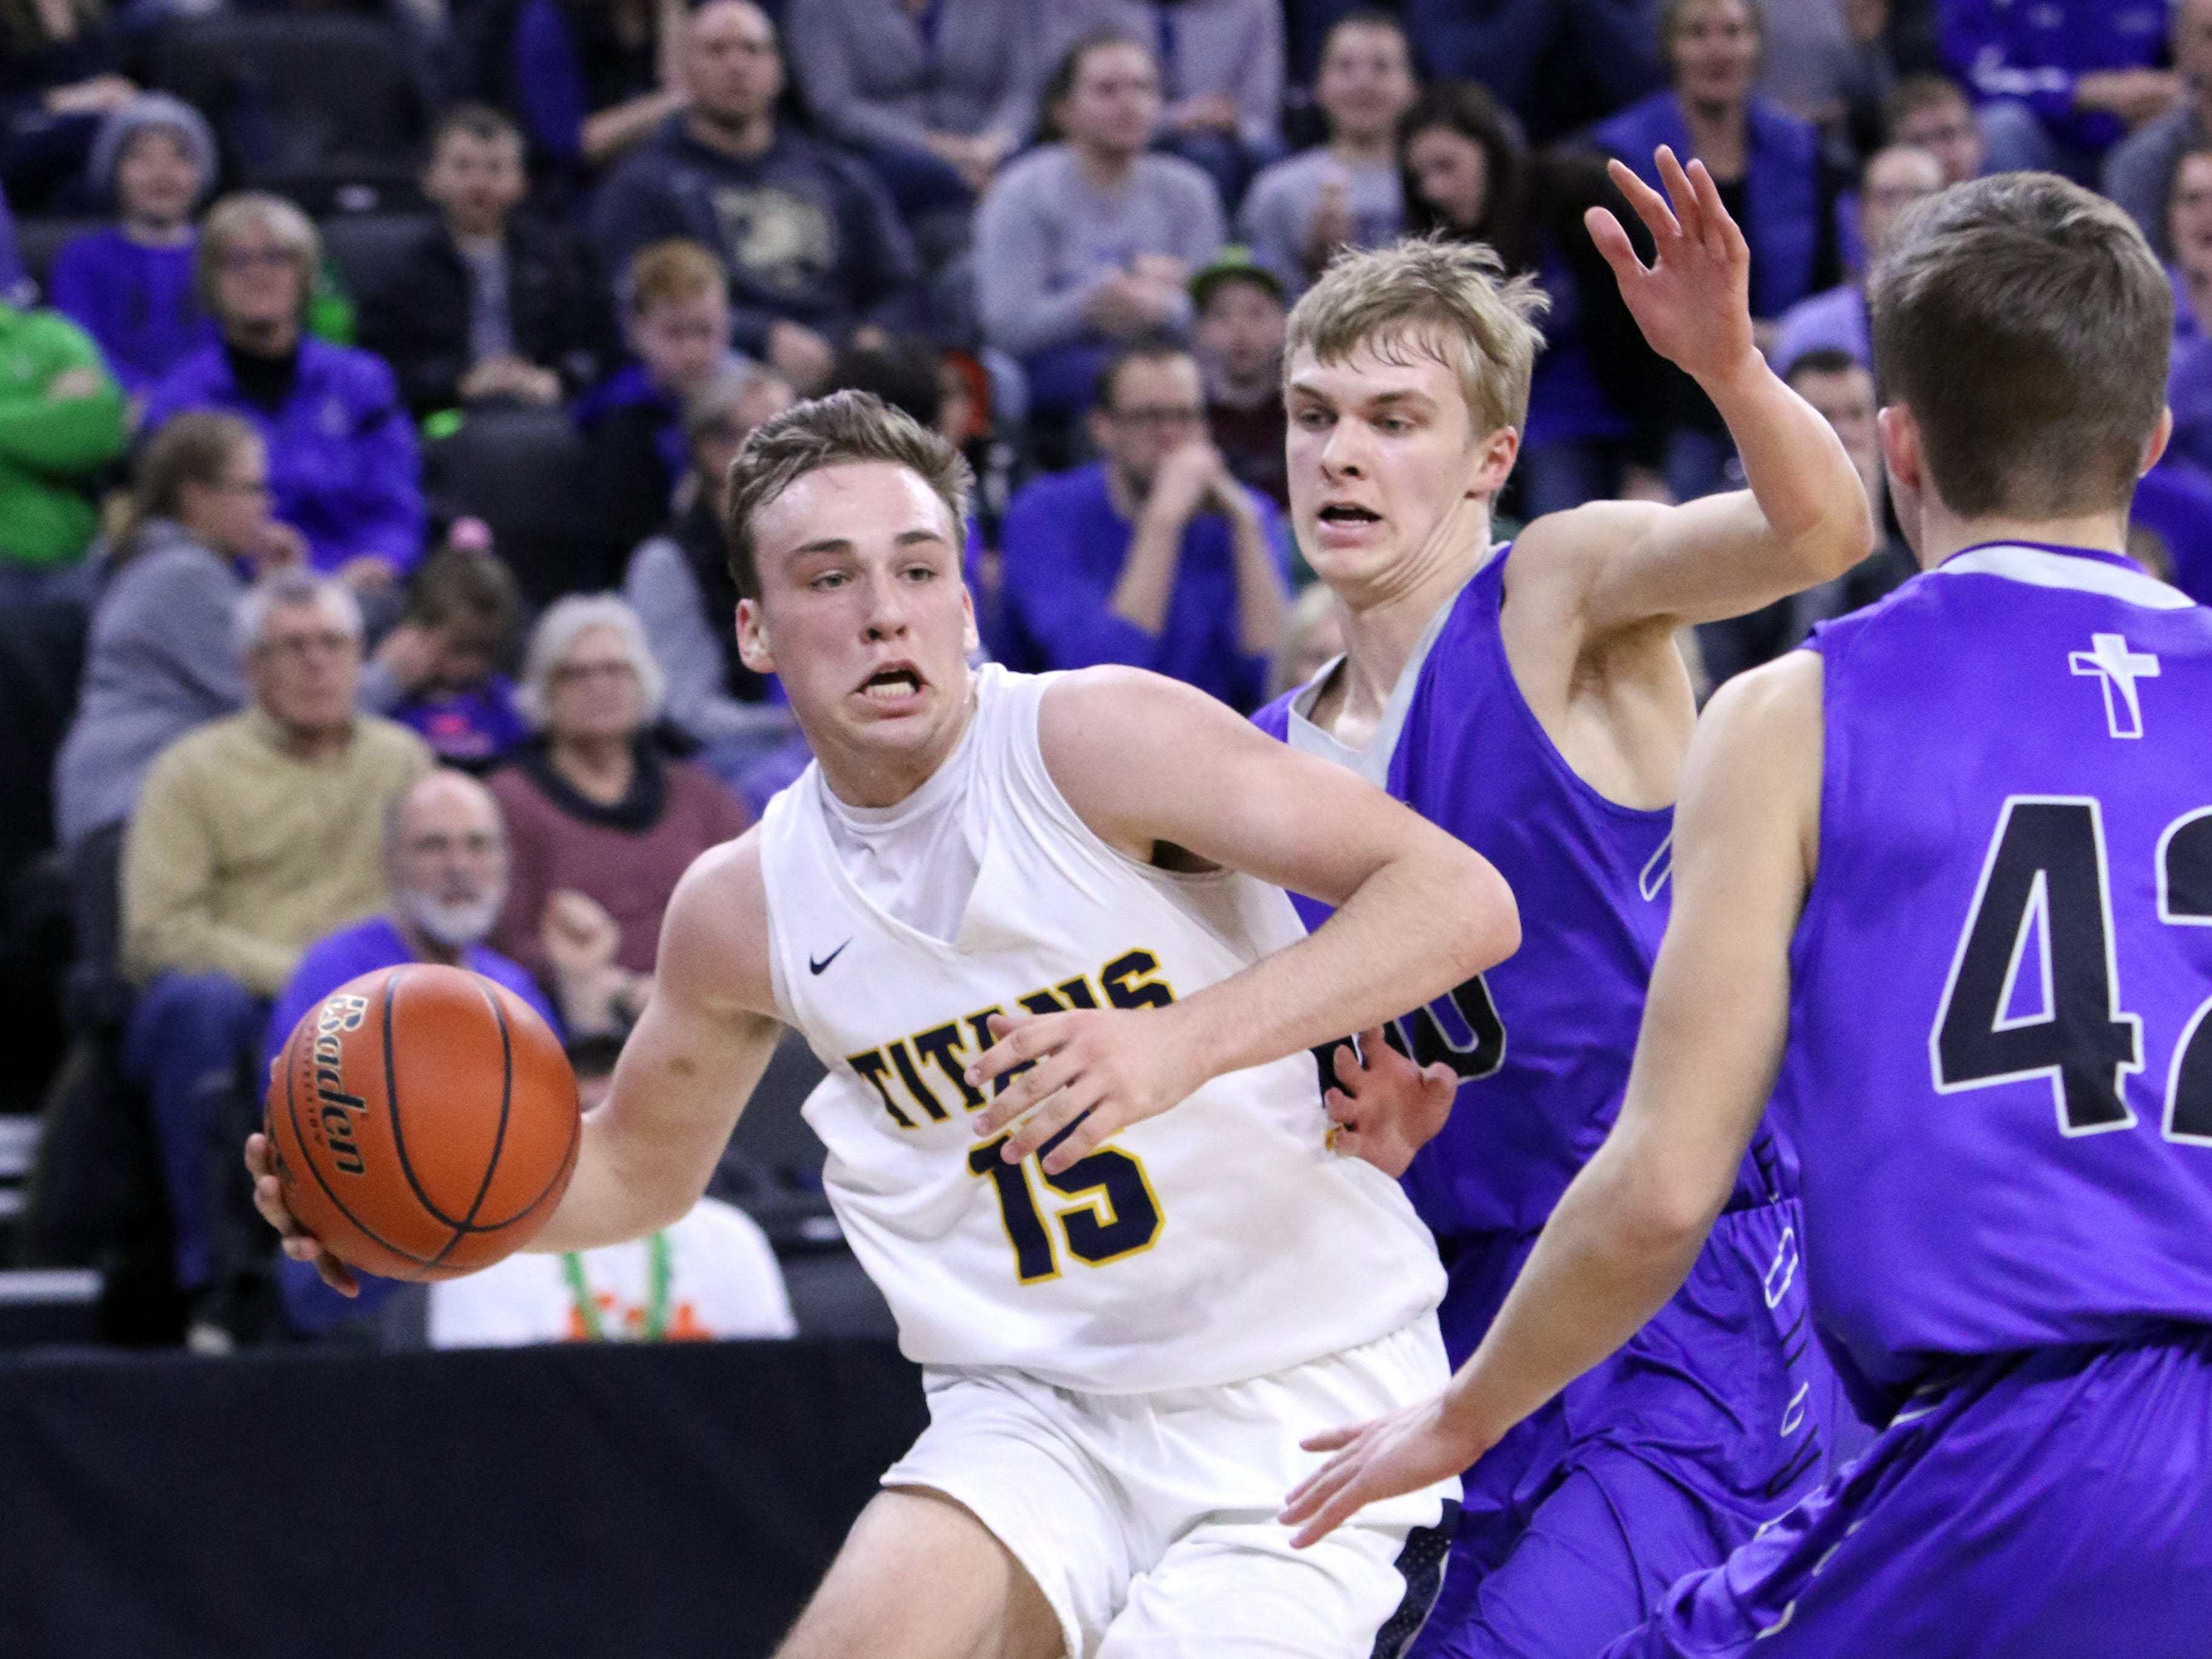 Noah Freidel of Tea Area drives the baseline against several Sioux Falls Christian defenders during Saturday's Class A title game at the Premier Center.